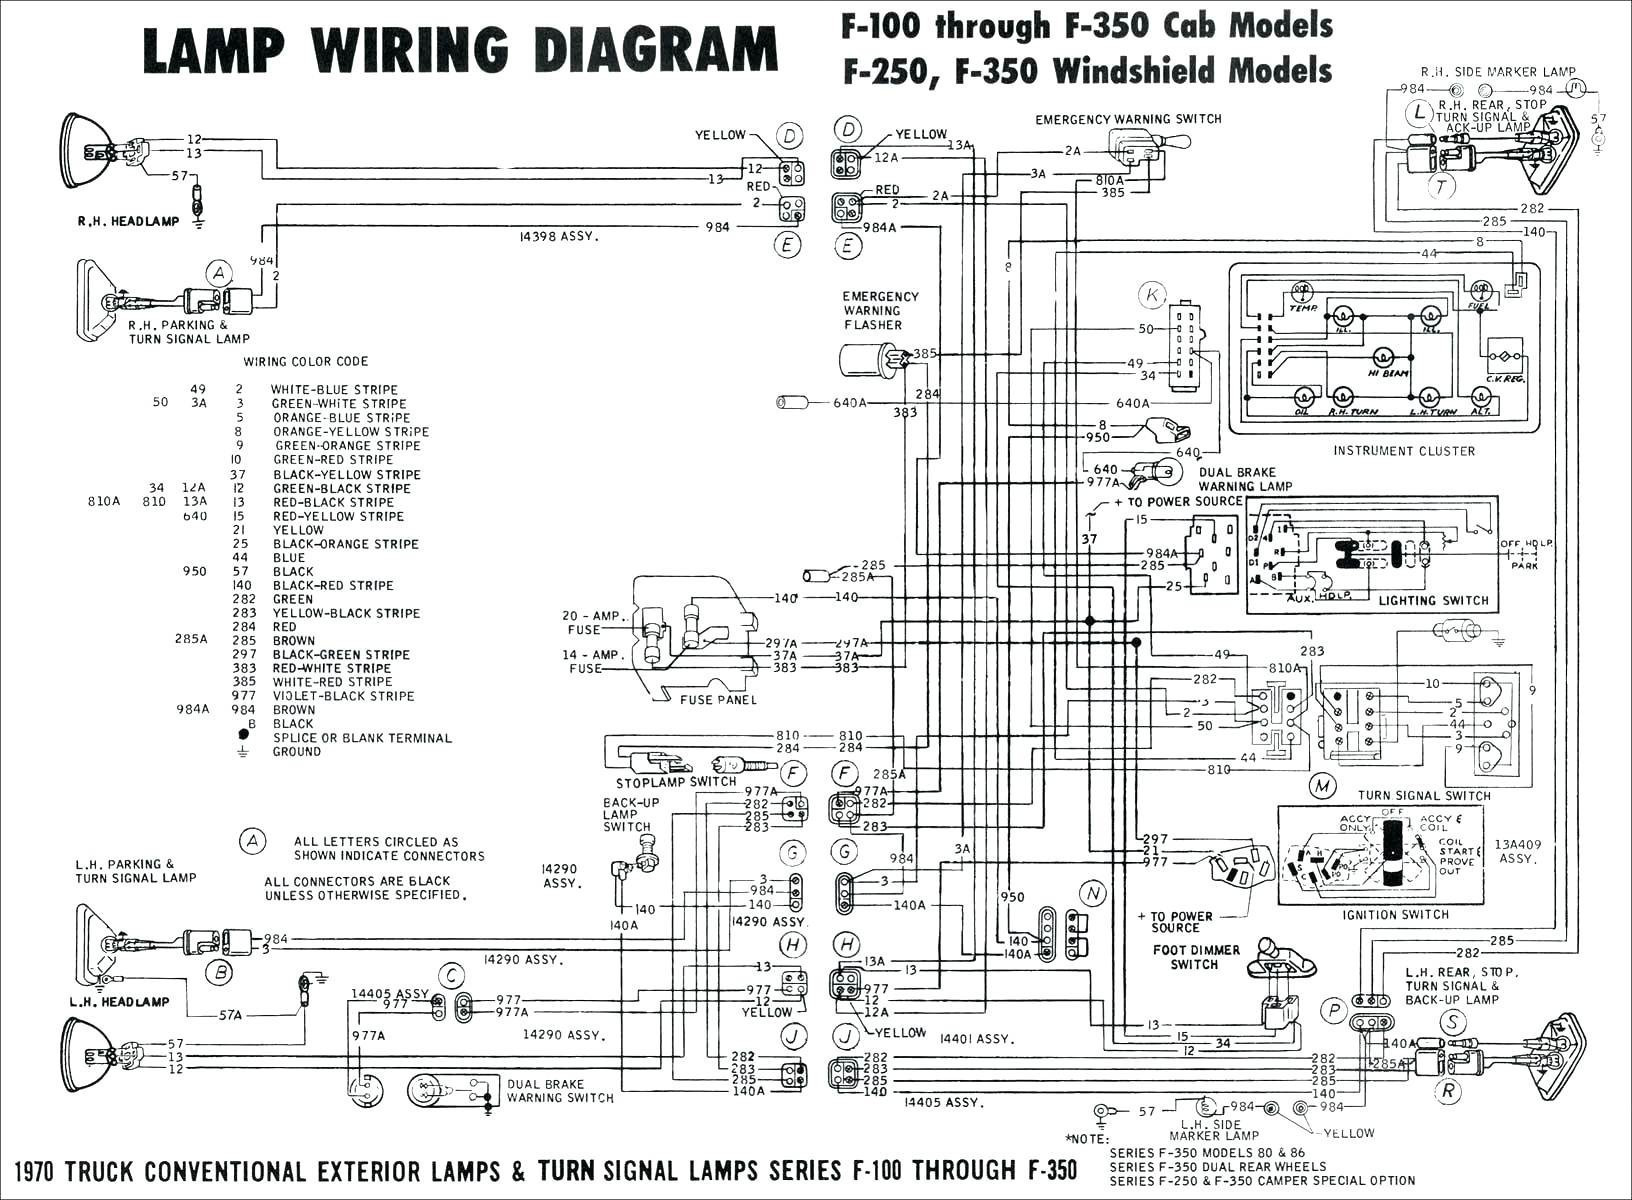 1999 Bmw 328I Radio Wiring Diagram - Pickenscountymedicalcenter - Mercedes Benz Radio Wiring Diagram